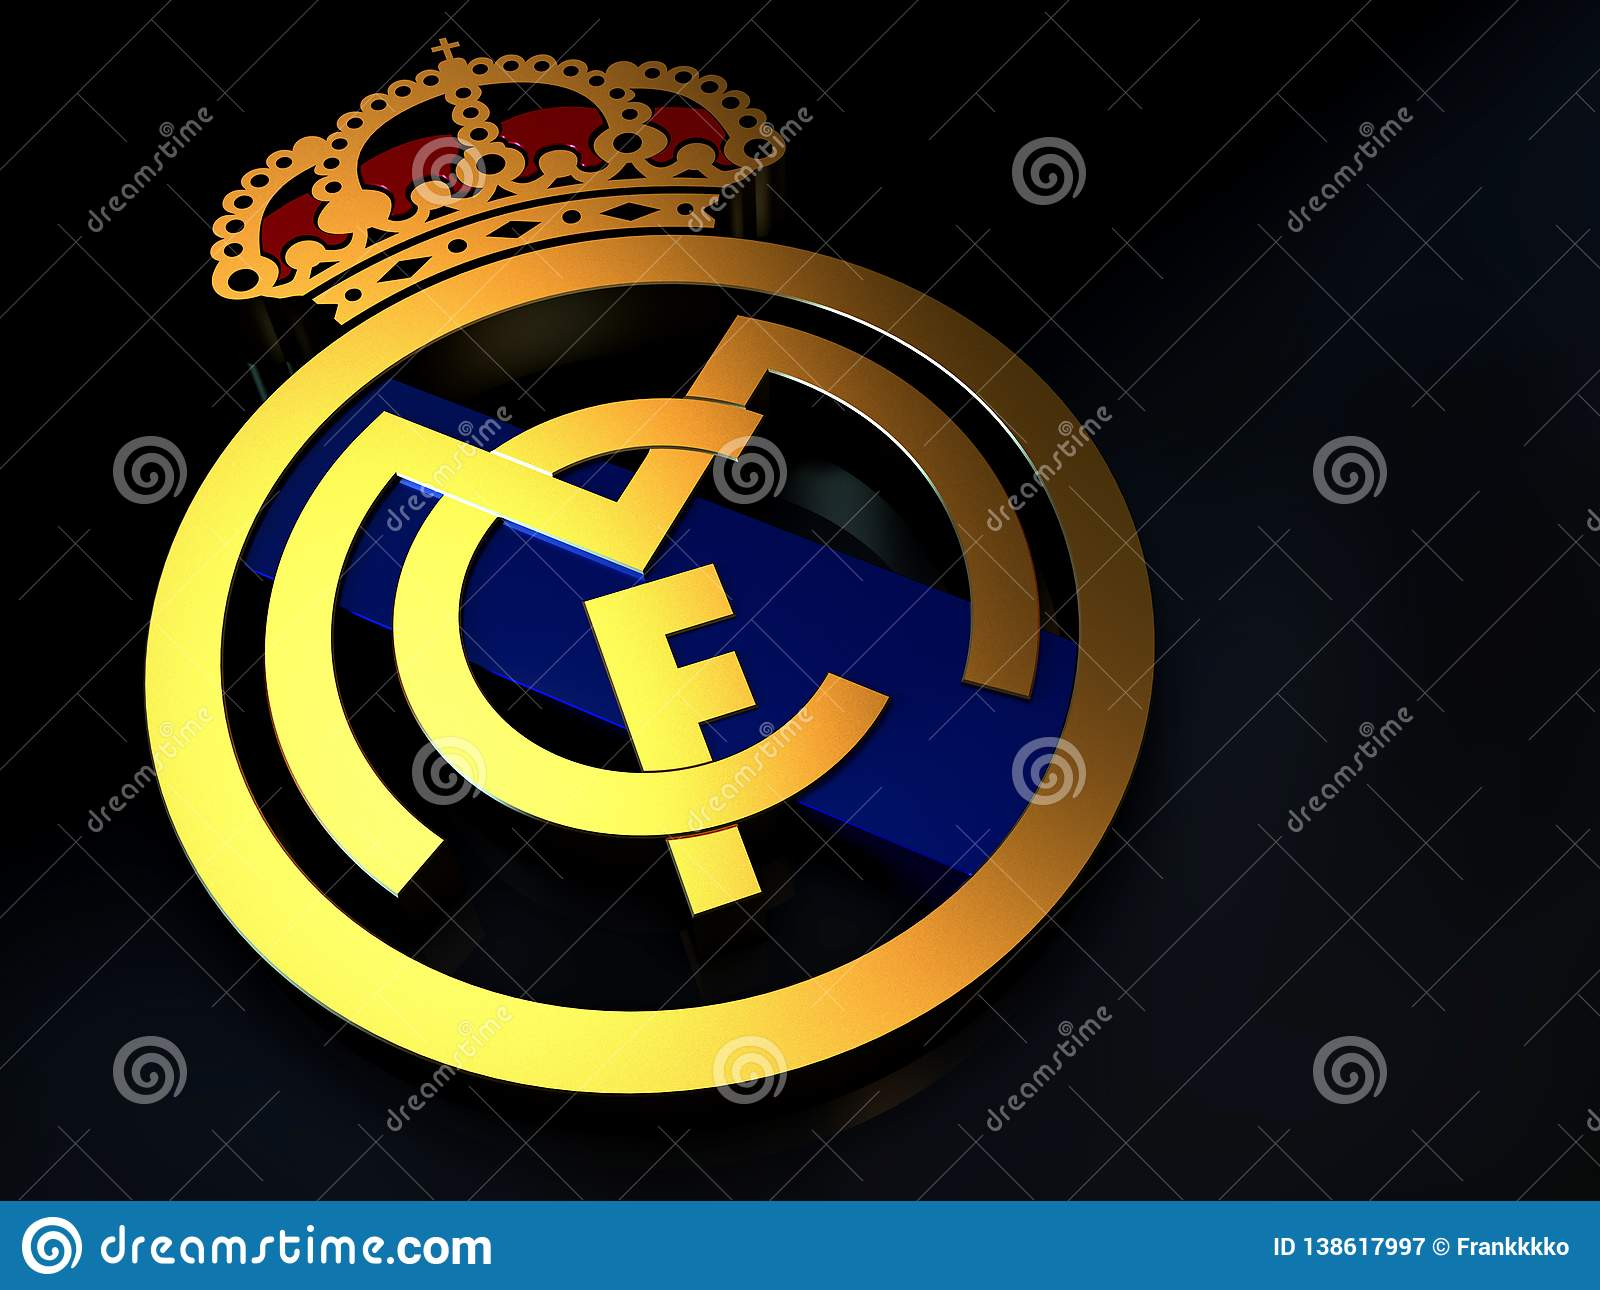 Real Madrid Football Team Logo Made Of Gold Editorial Photography Illustration Of Champions Design 138617997